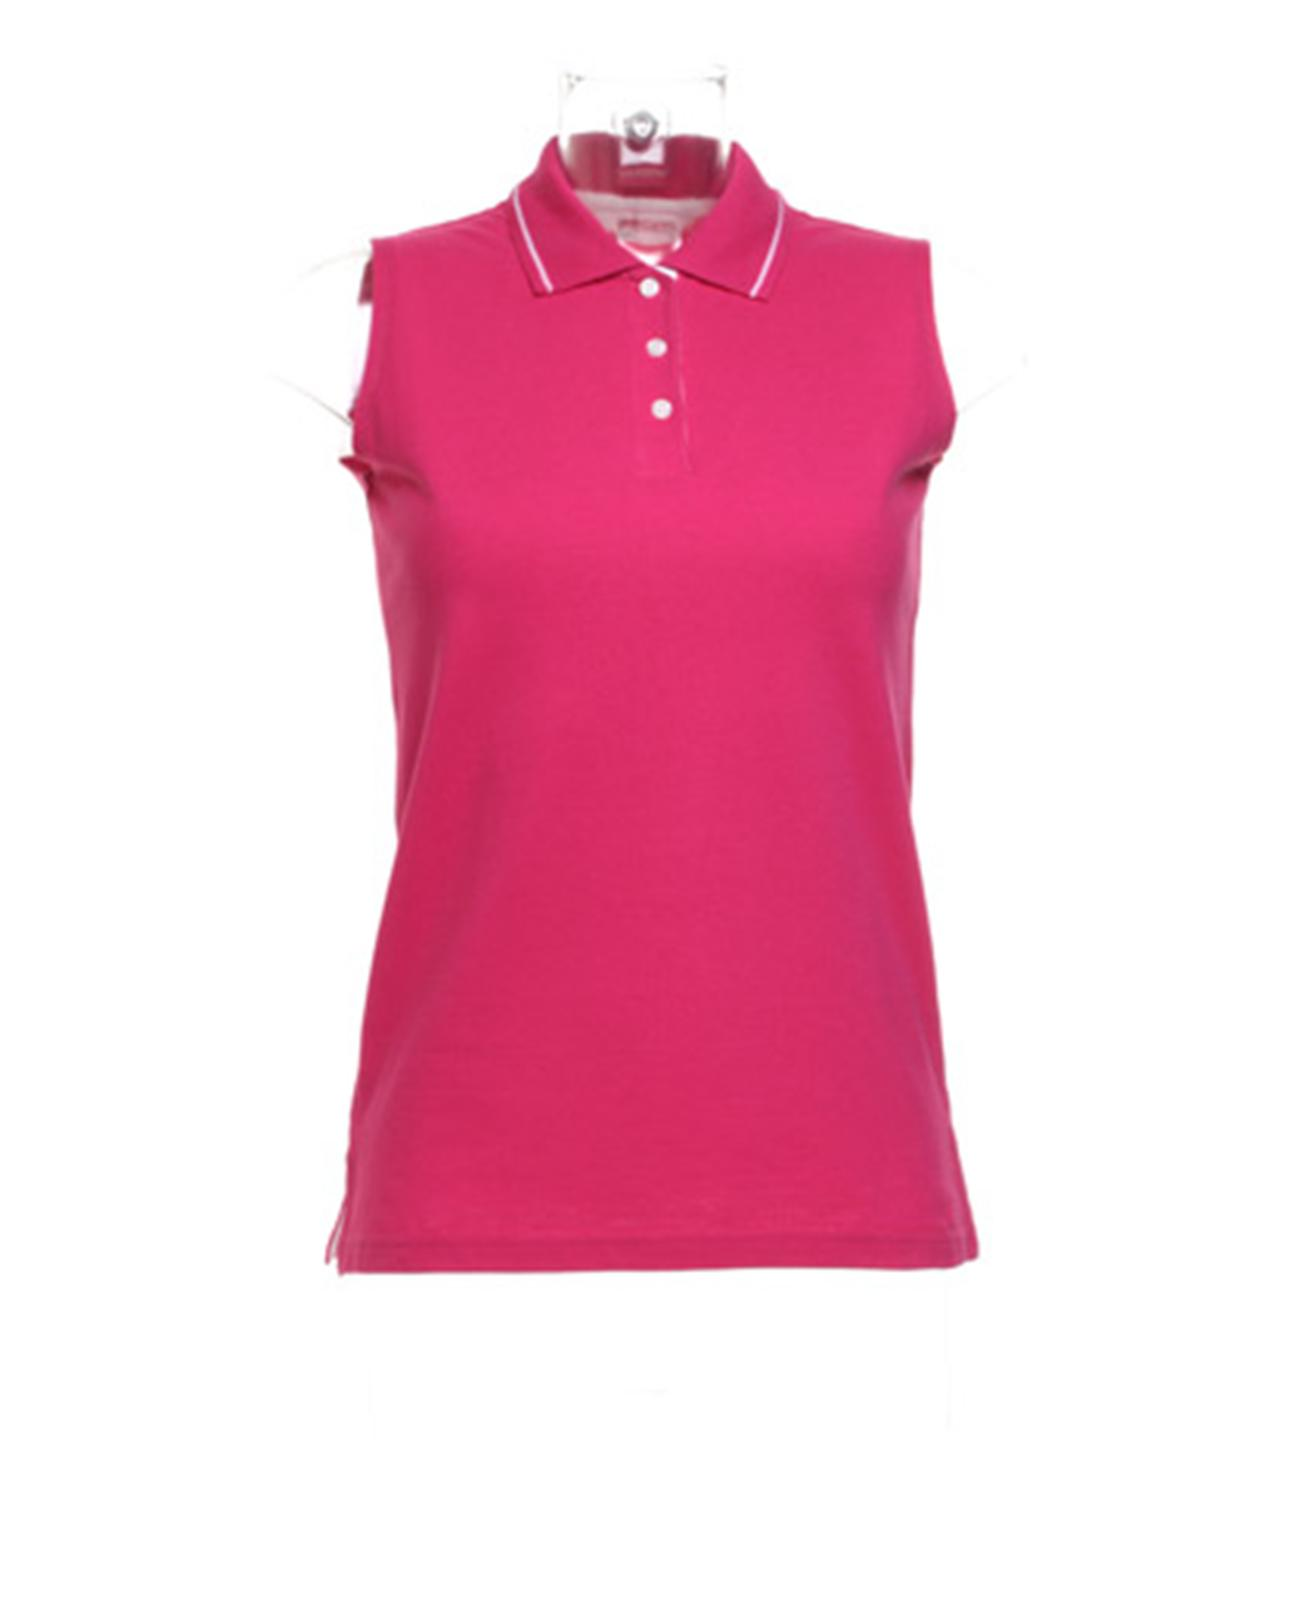 New gamegear womens ladies golf proactive sleeveless polo for Ladies sleeveless golf polo shirts